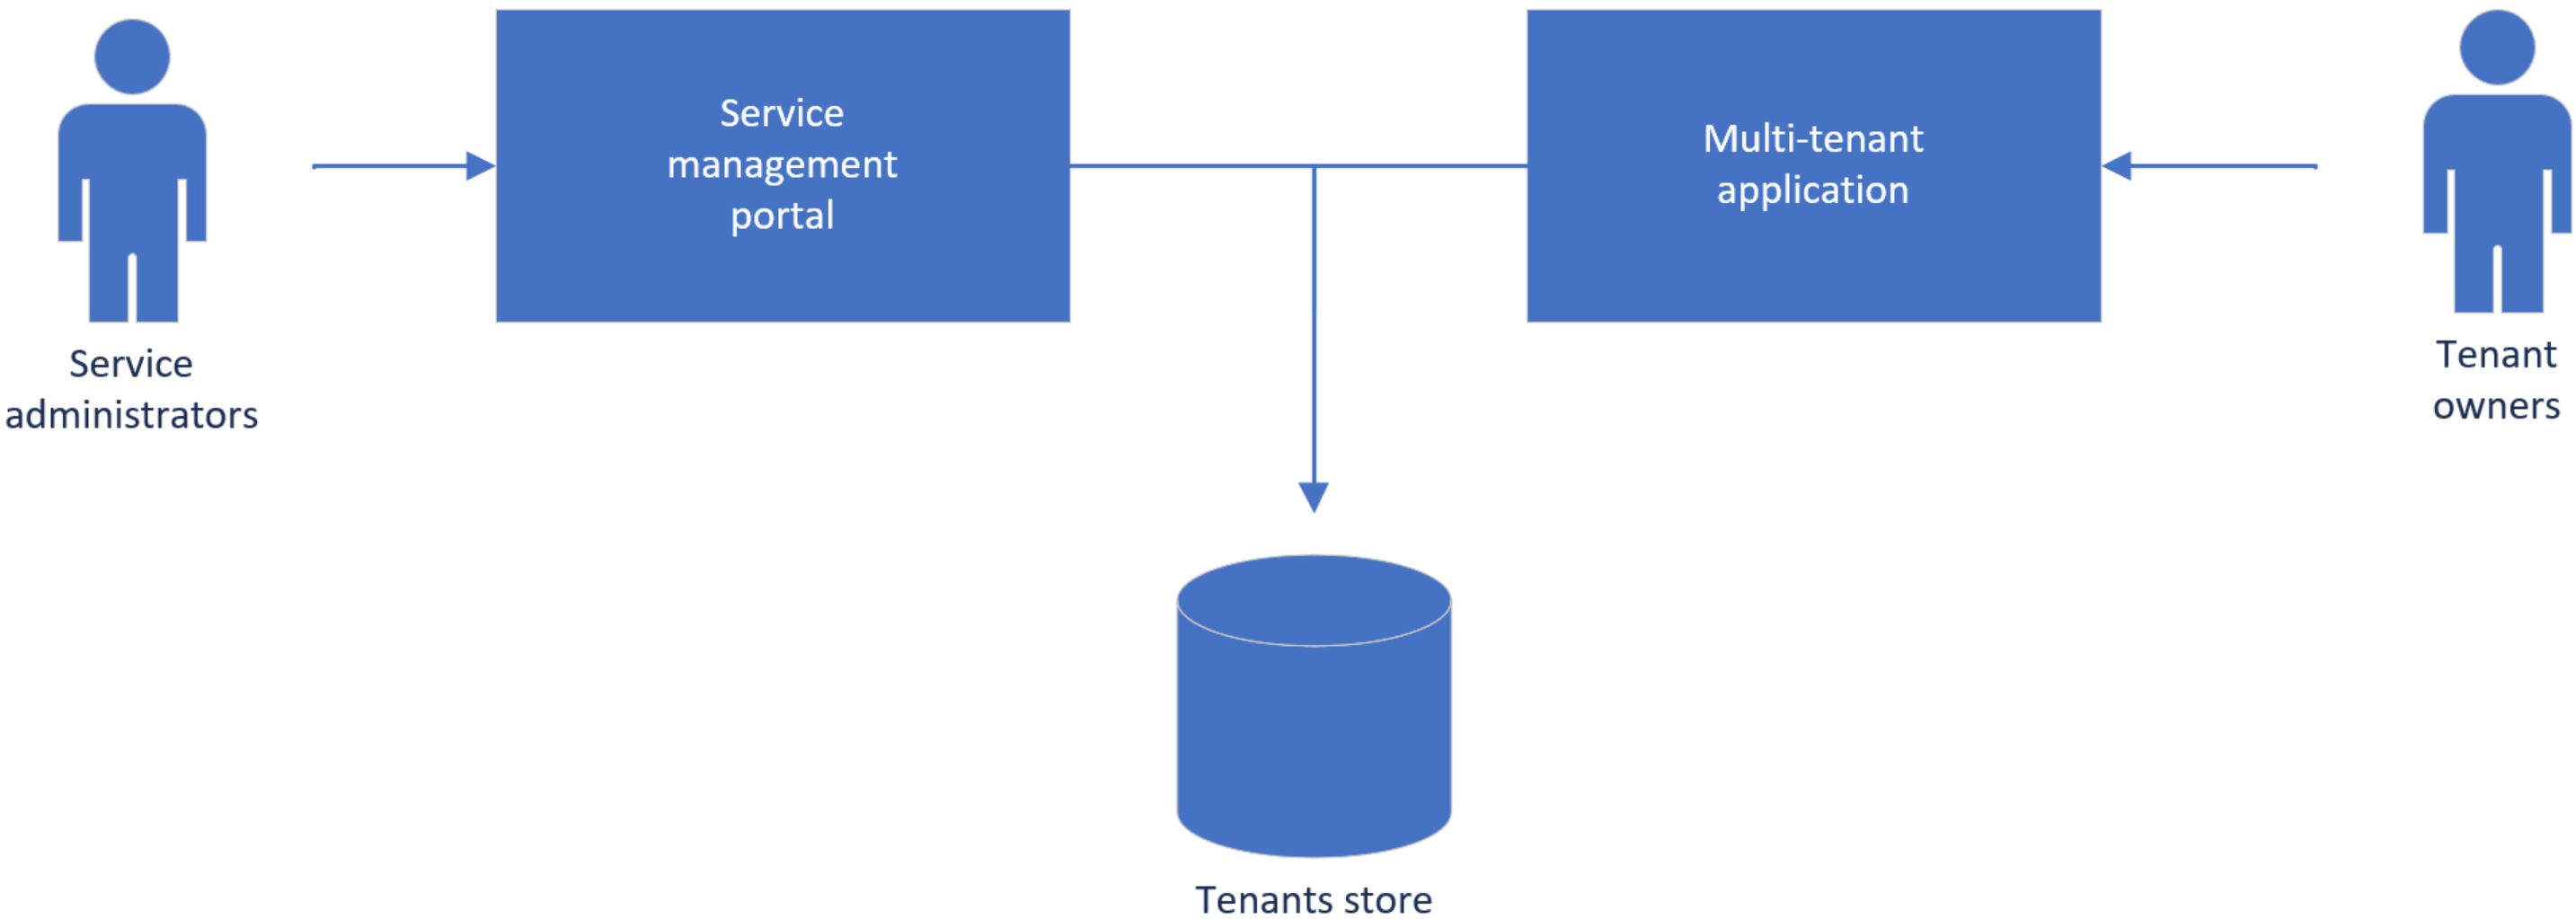 Tenant features can be configured by service administrators and tenant owners